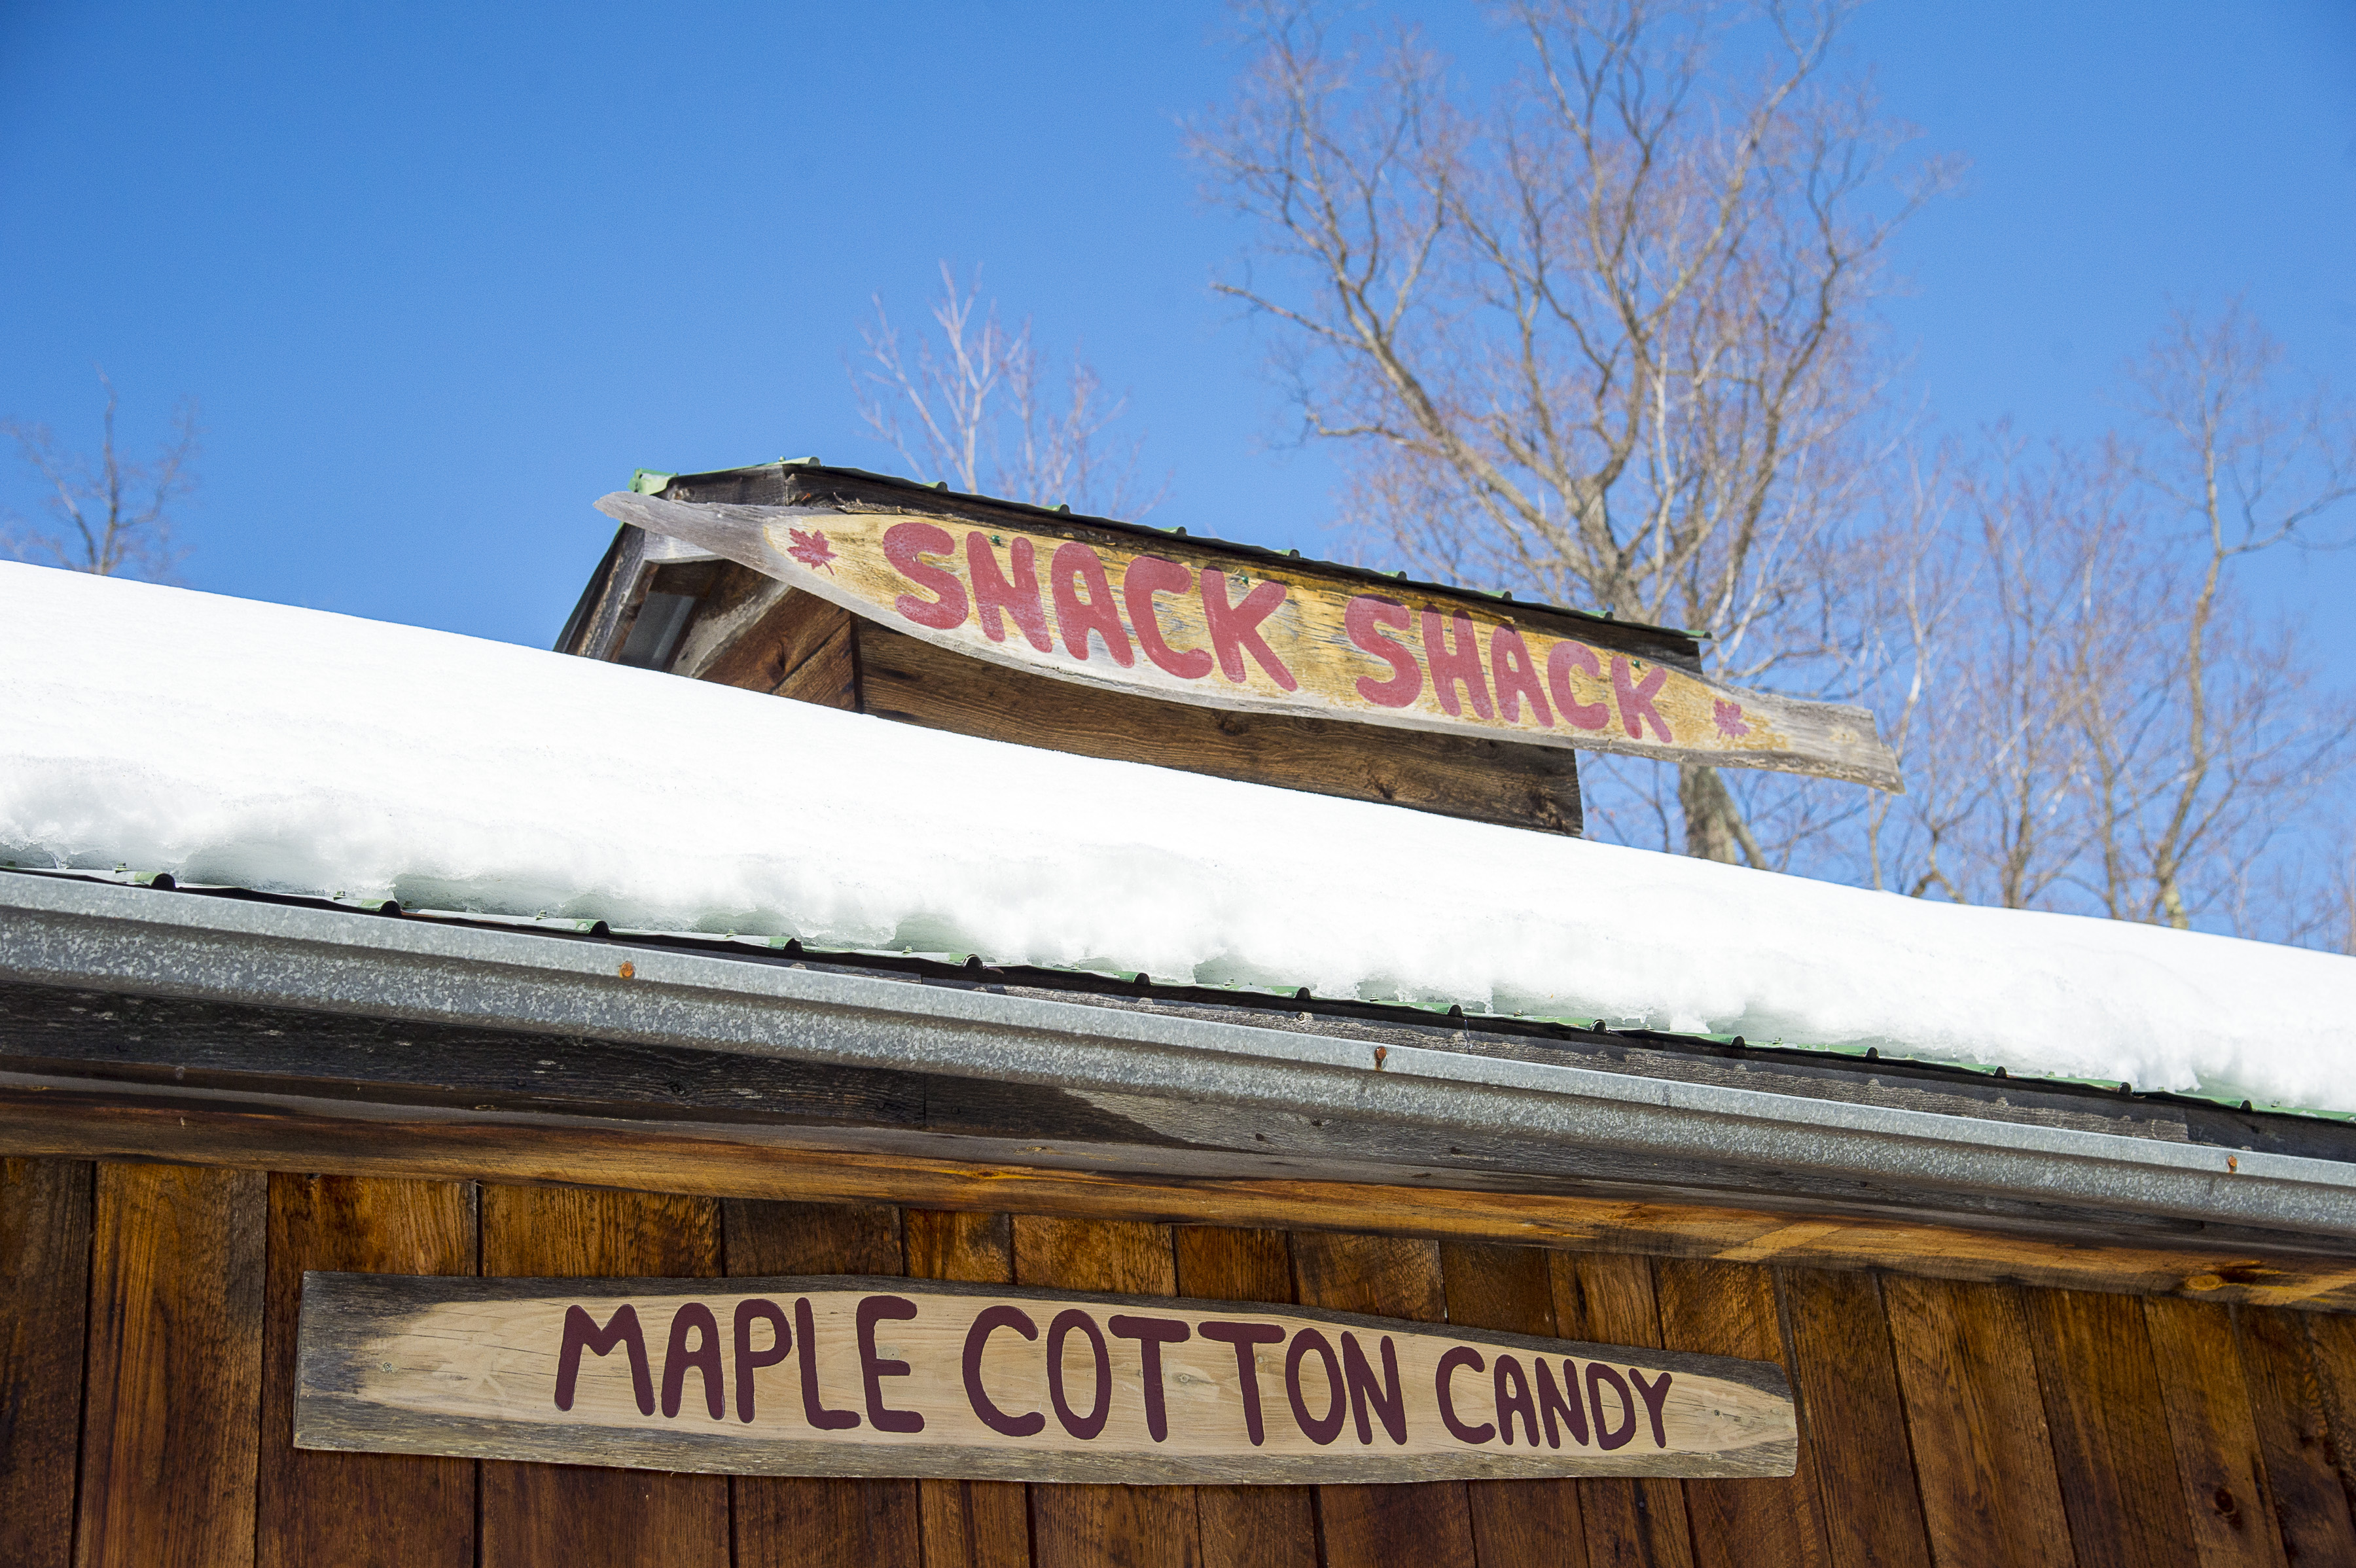 ATTRACTION _ FULTONS _ MAPLE EXPERIENCES _ OHTO PHOTOSHOOT _ MAPLE SYRUP COTTON CANDY _ WINTER _ CREDIT TO TREVOR LUSH _ LIMITED PERMISSIONS _ 2014 (89)